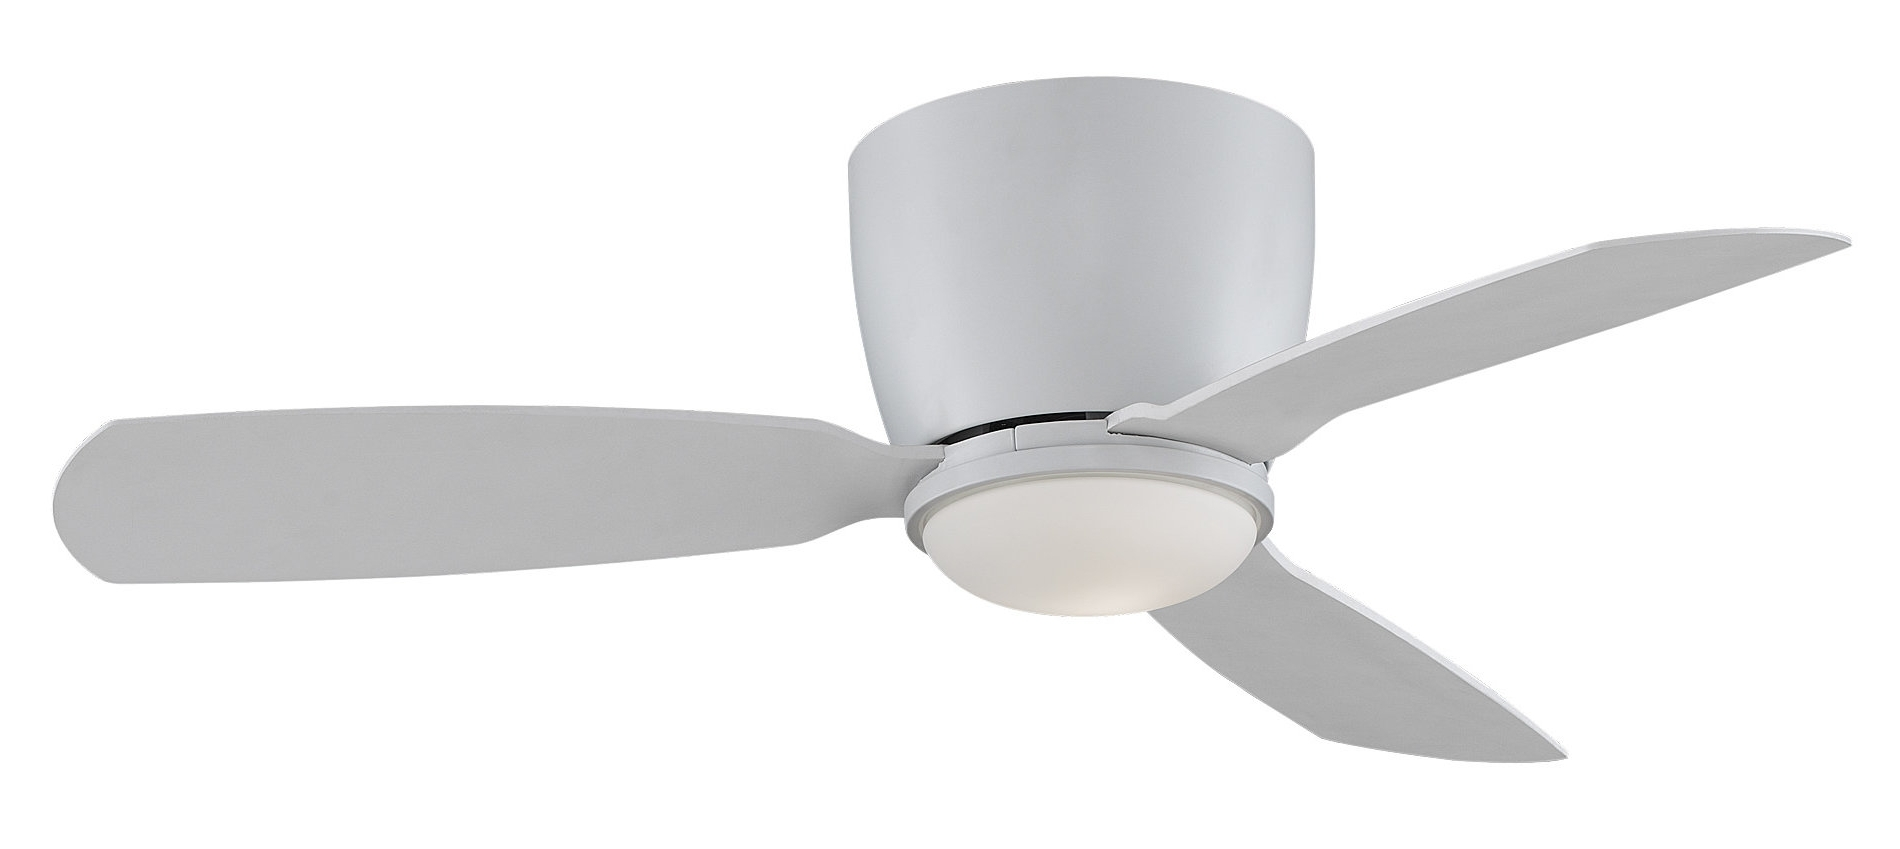 Victorian Style Outdoor Ceiling Fans Throughout Famous Fanimation (Gallery 10 of 20)